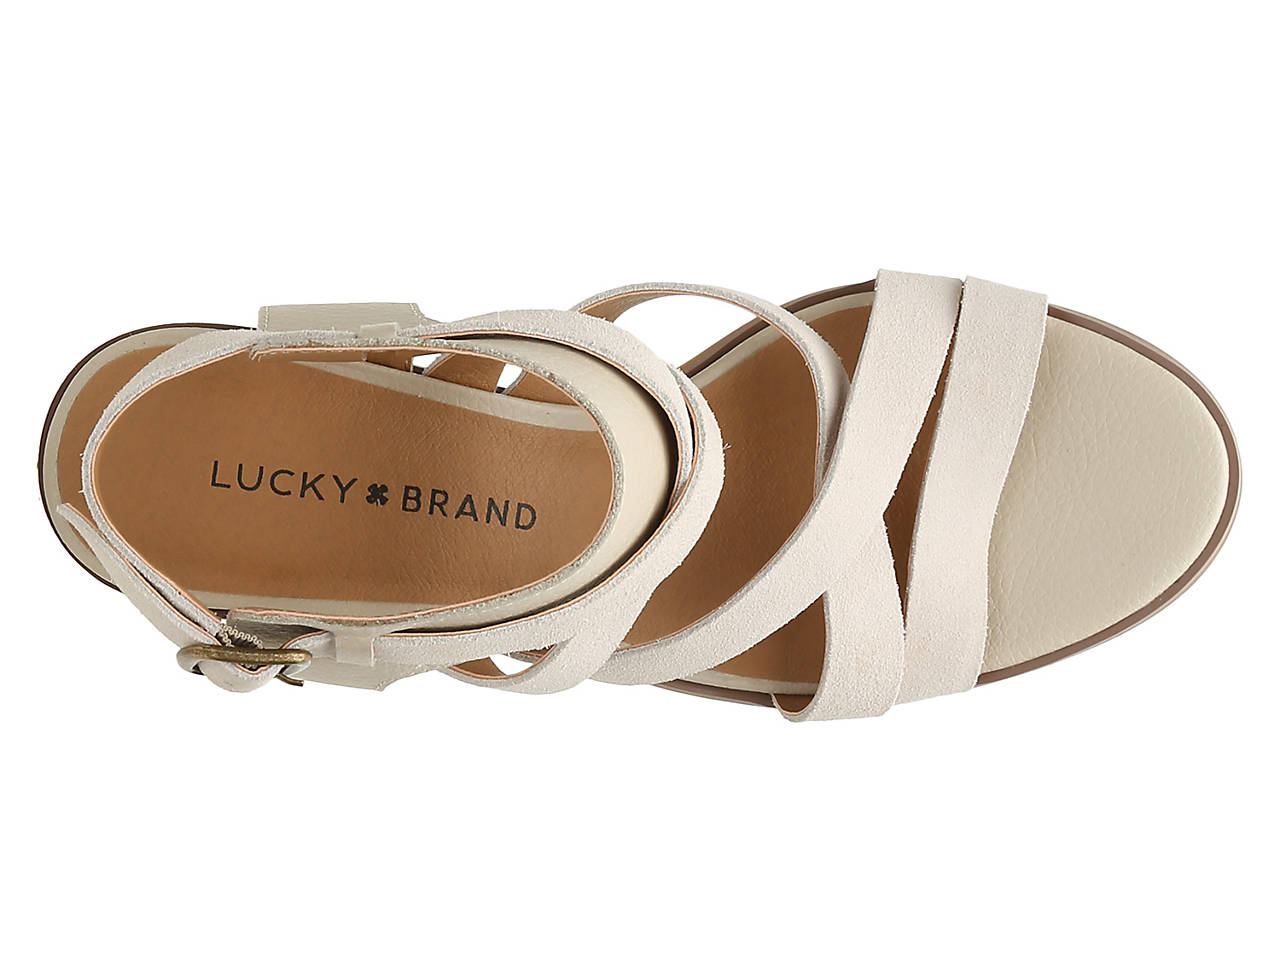 7a9e2f9bb15 Lucky Brand Kailasa Sandal Women s Shoes